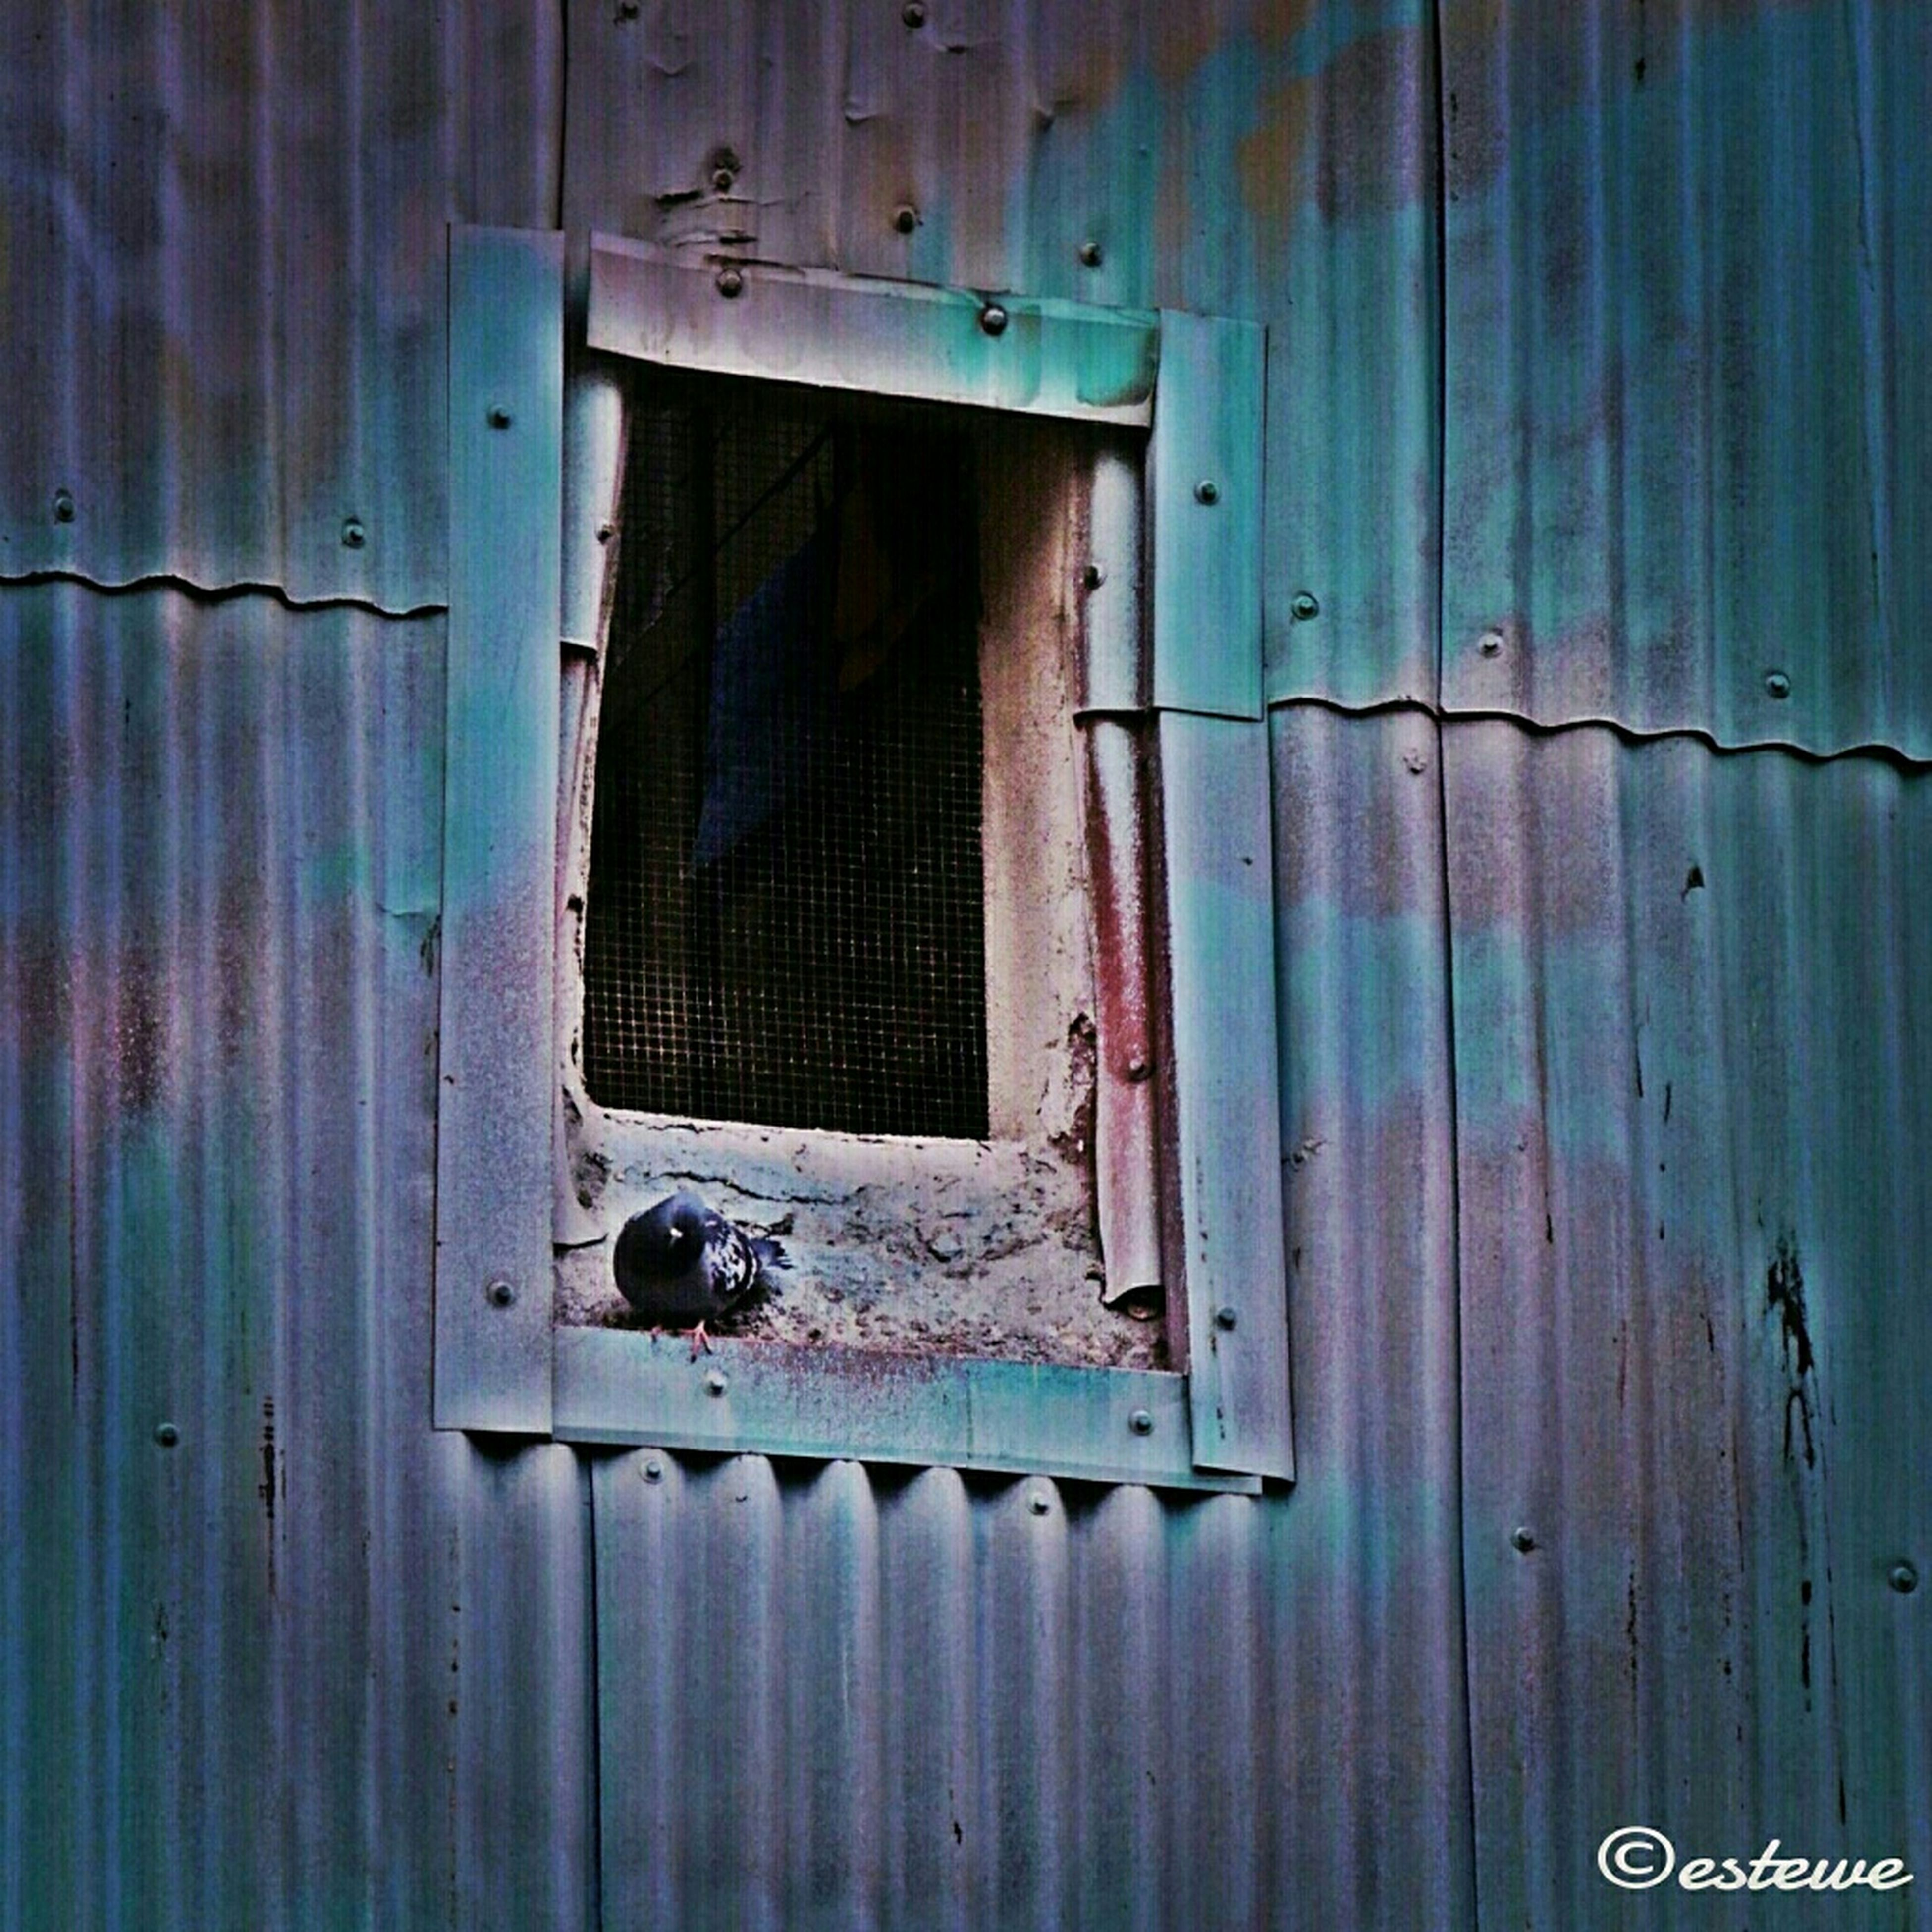 built structure, architecture, abandoned, old, door, weathered, building exterior, damaged, house, run-down, obsolete, deterioration, window, wood - material, closed, bad condition, residential structure, rusty, safety, protection